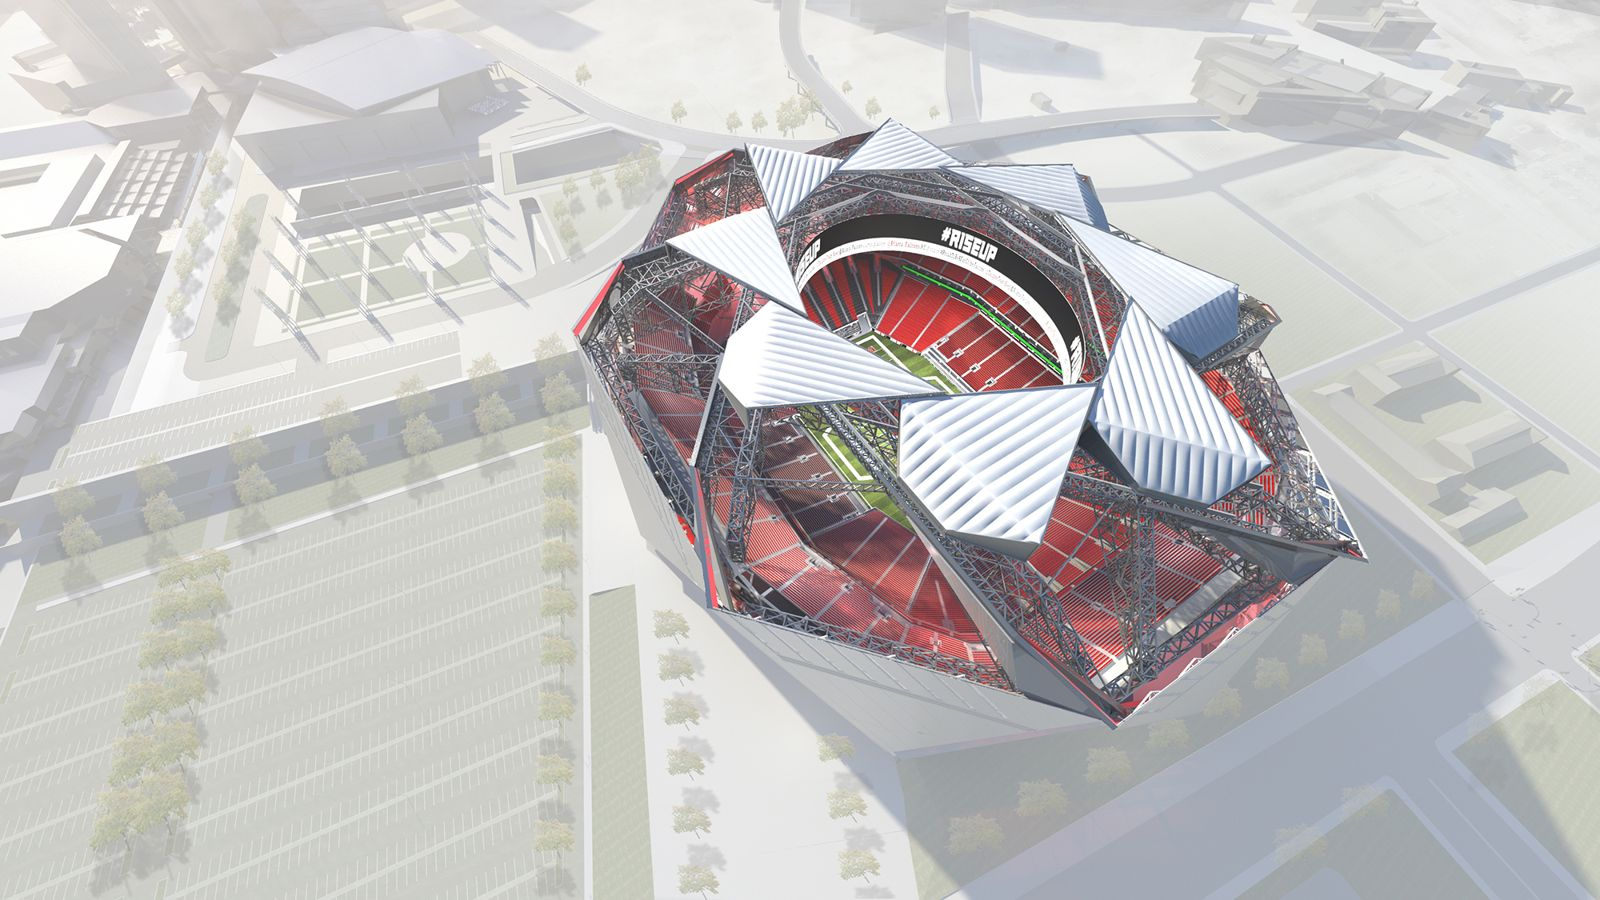 Design Mercedes Benz Stadium Stadiumdb Com